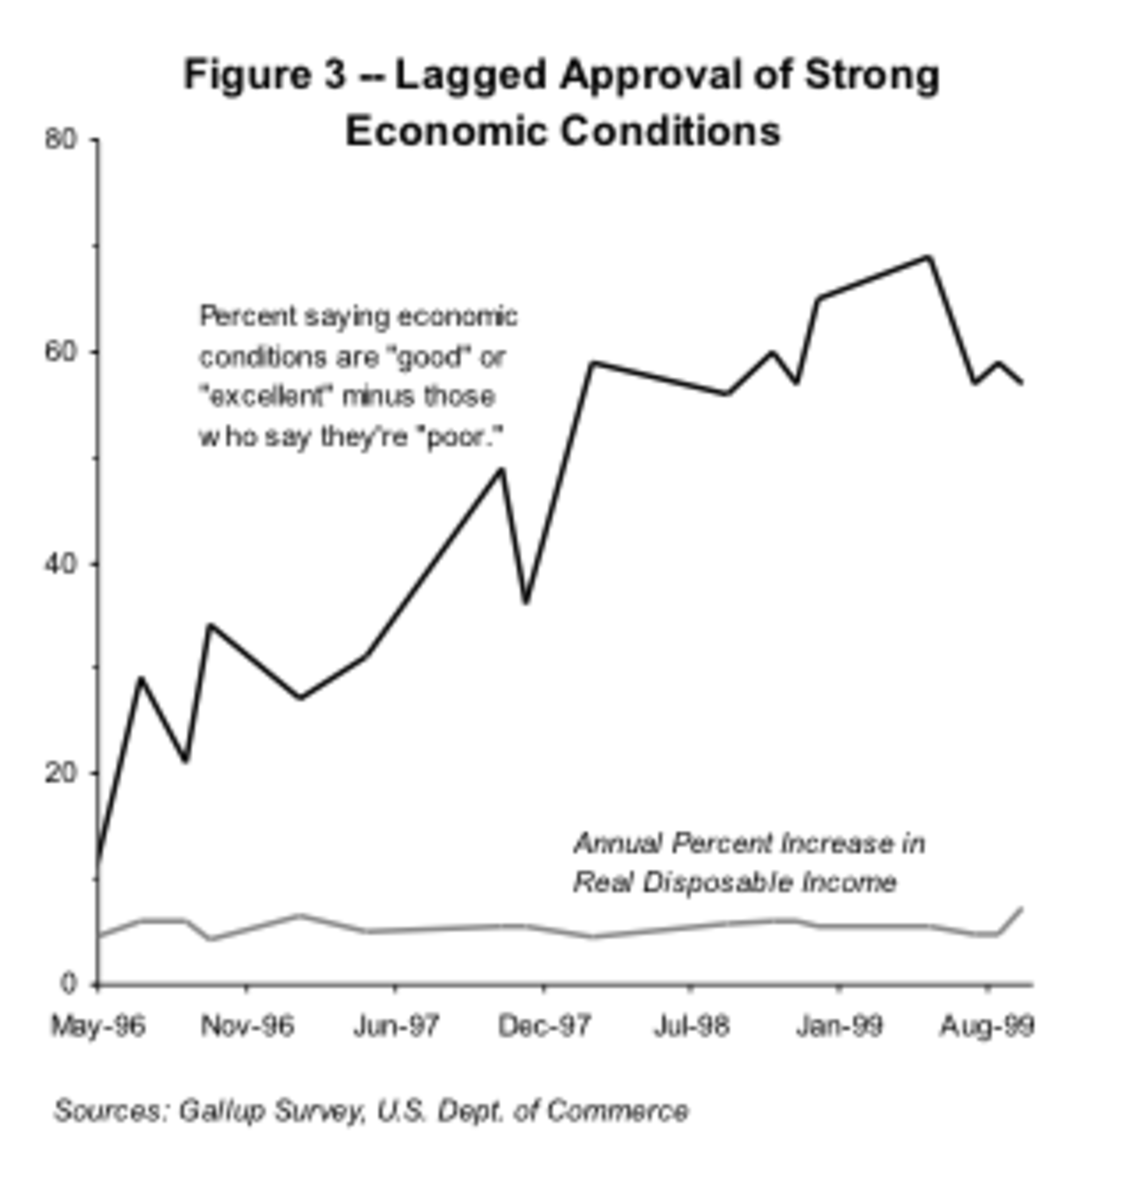 lagged-economic-approval